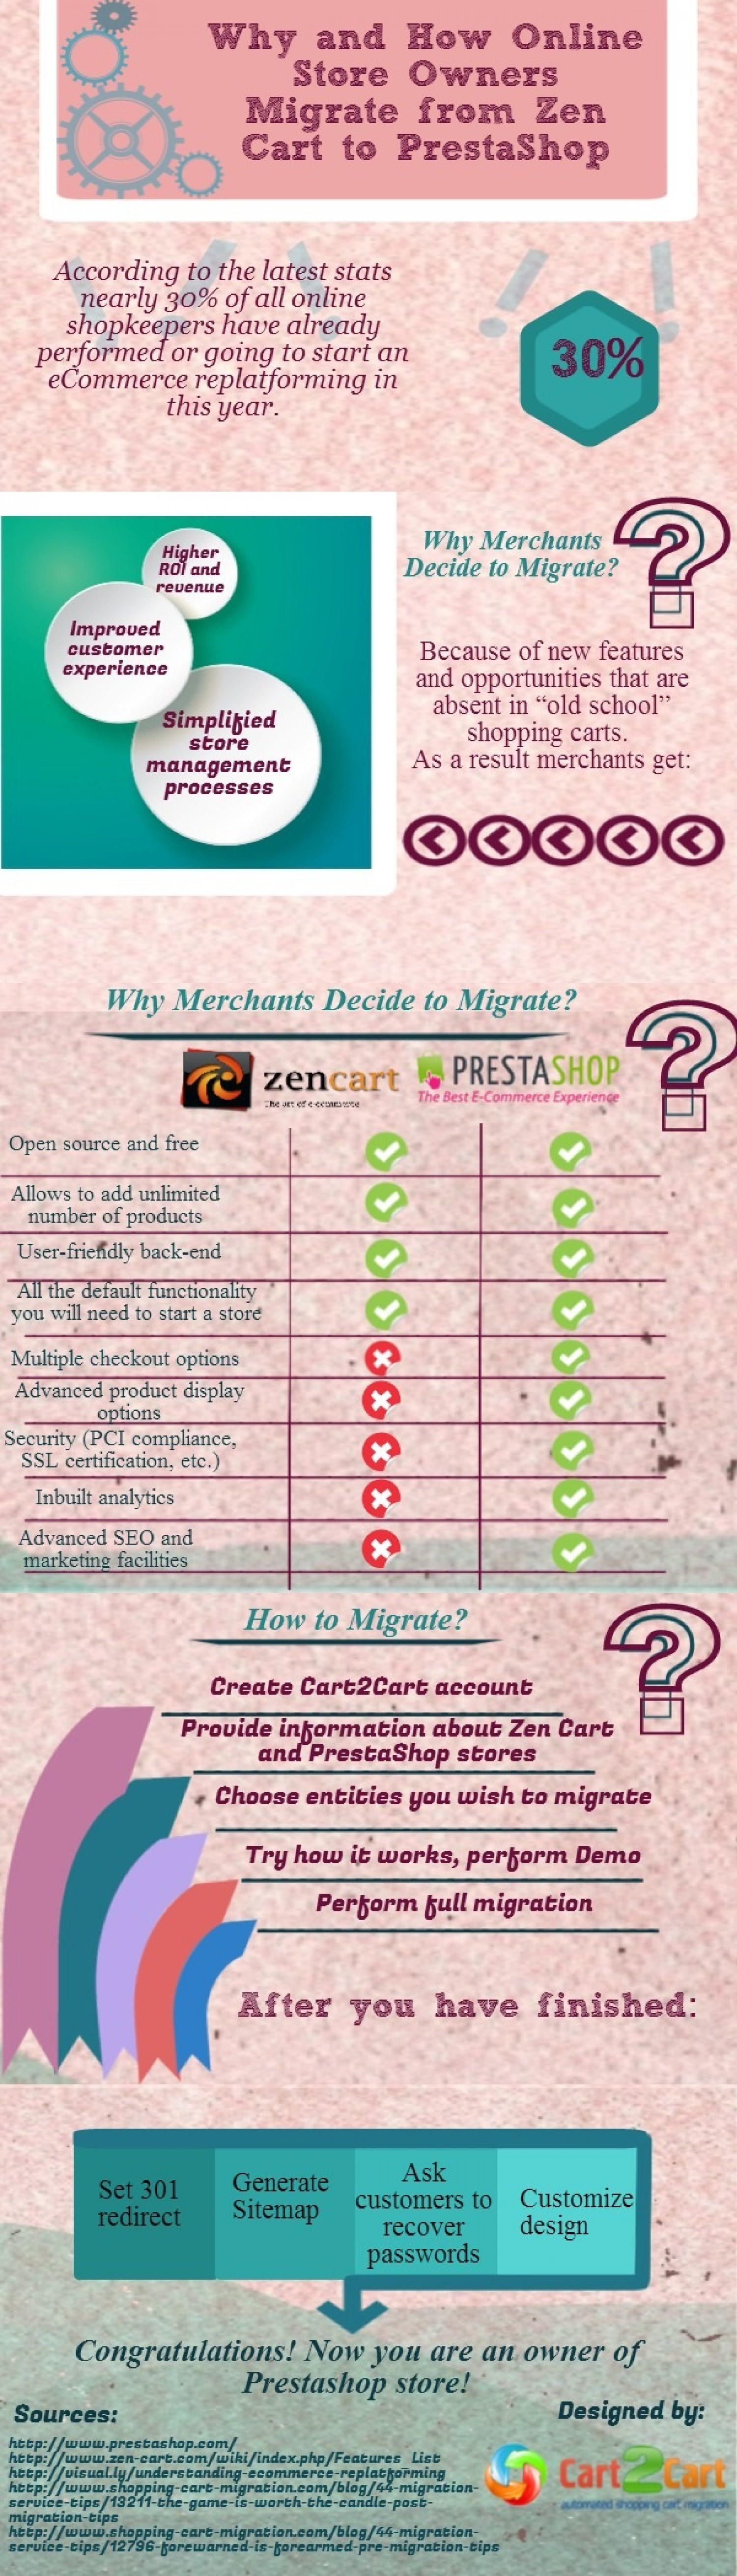 Why and How Online Store Owners Migrate from Zen Cart to PrestaShop Infographic